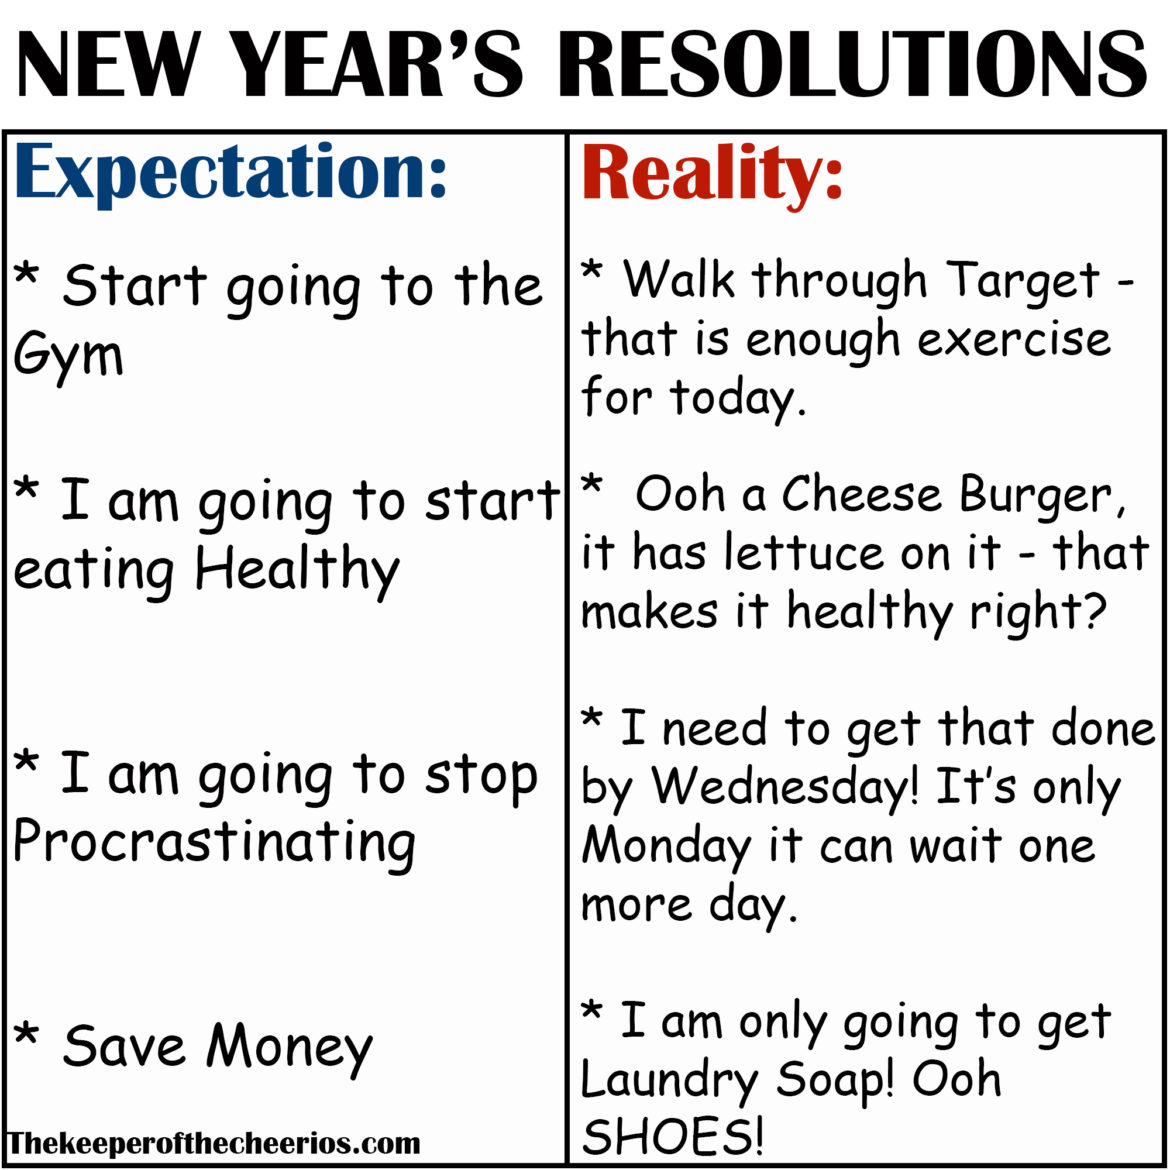 expectation-vs-reality-new-years-resolution